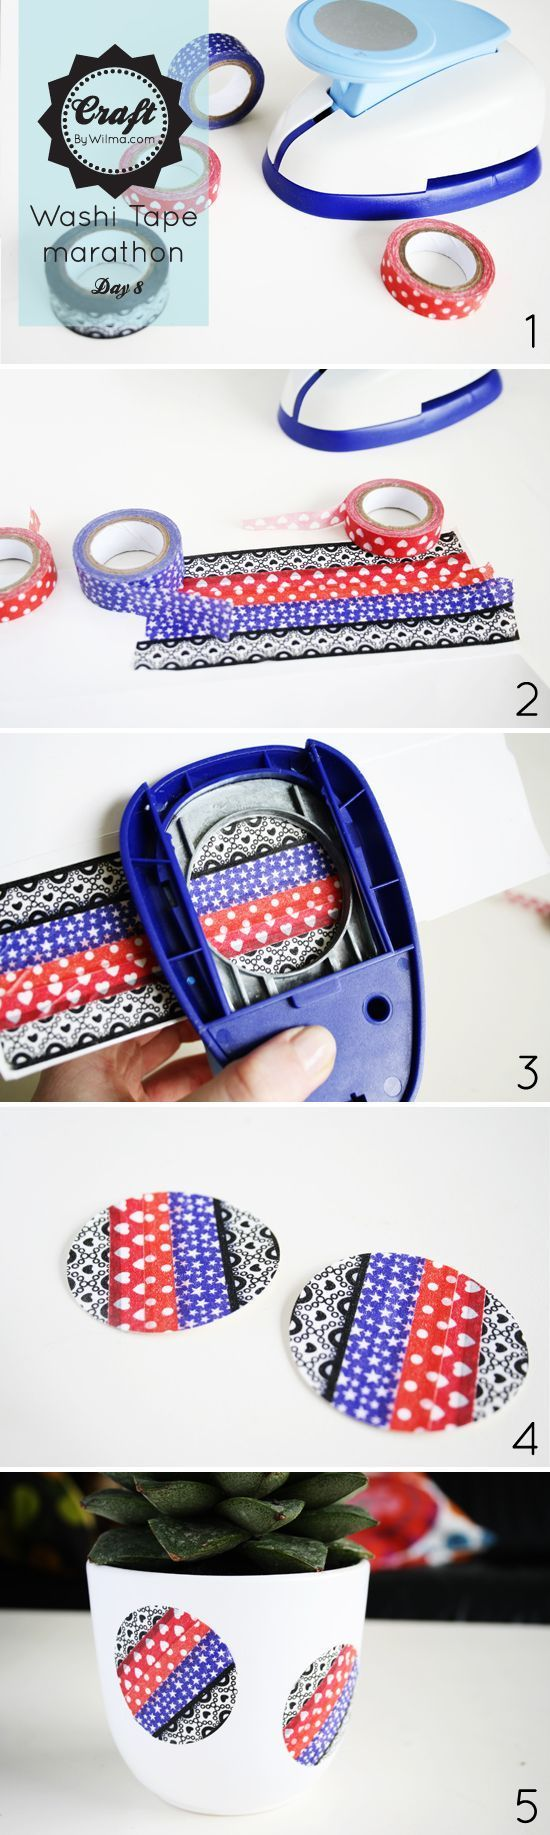 best 25 diy washi tape journal ideas on pinterest diy washi tape notebook diy ideen mit. Black Bedroom Furniture Sets. Home Design Ideas